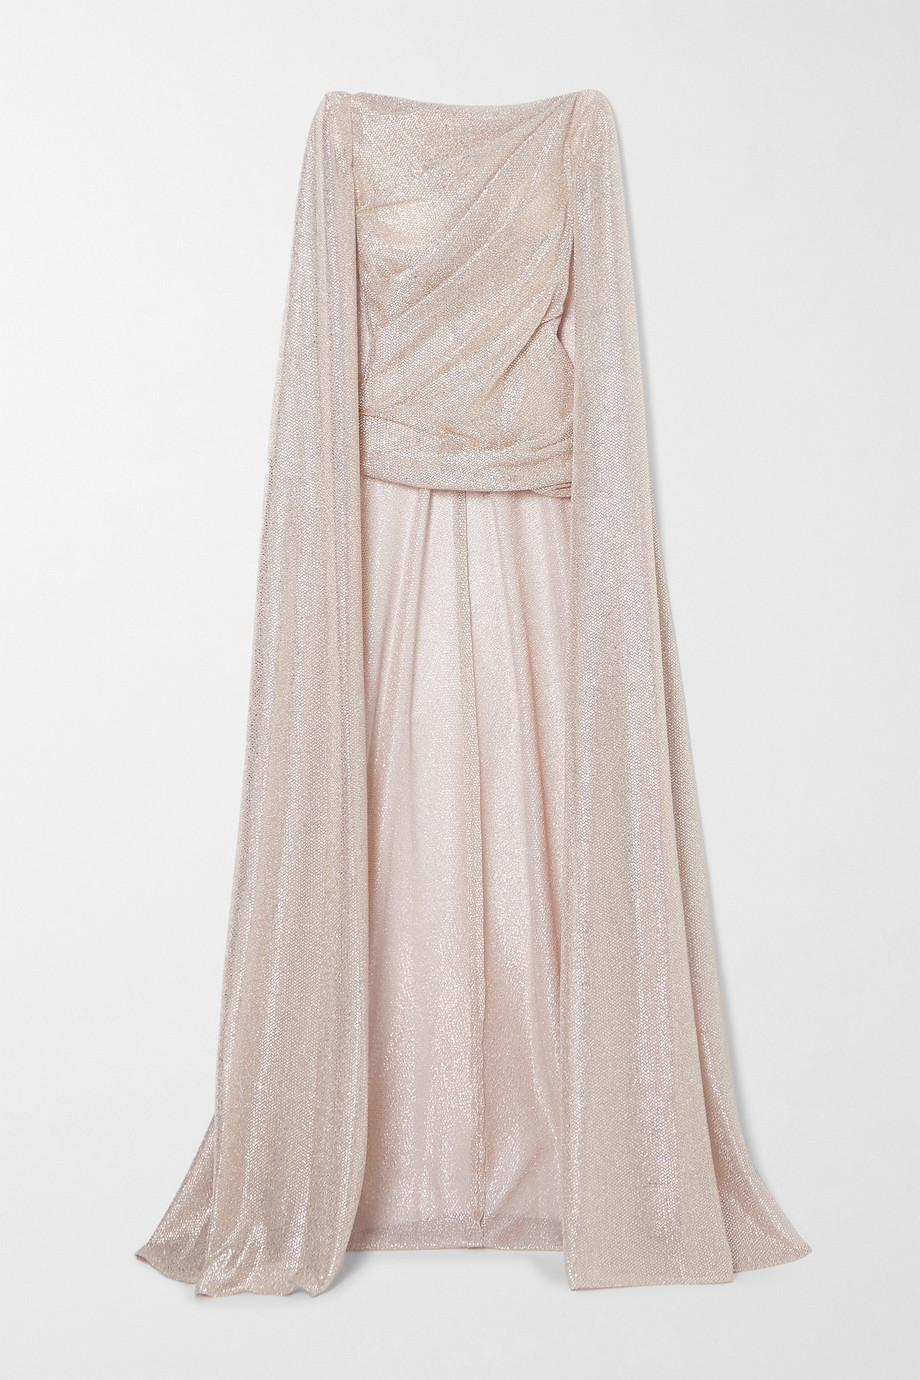 Talbot Runhof Cape-effect draped metallic voile top